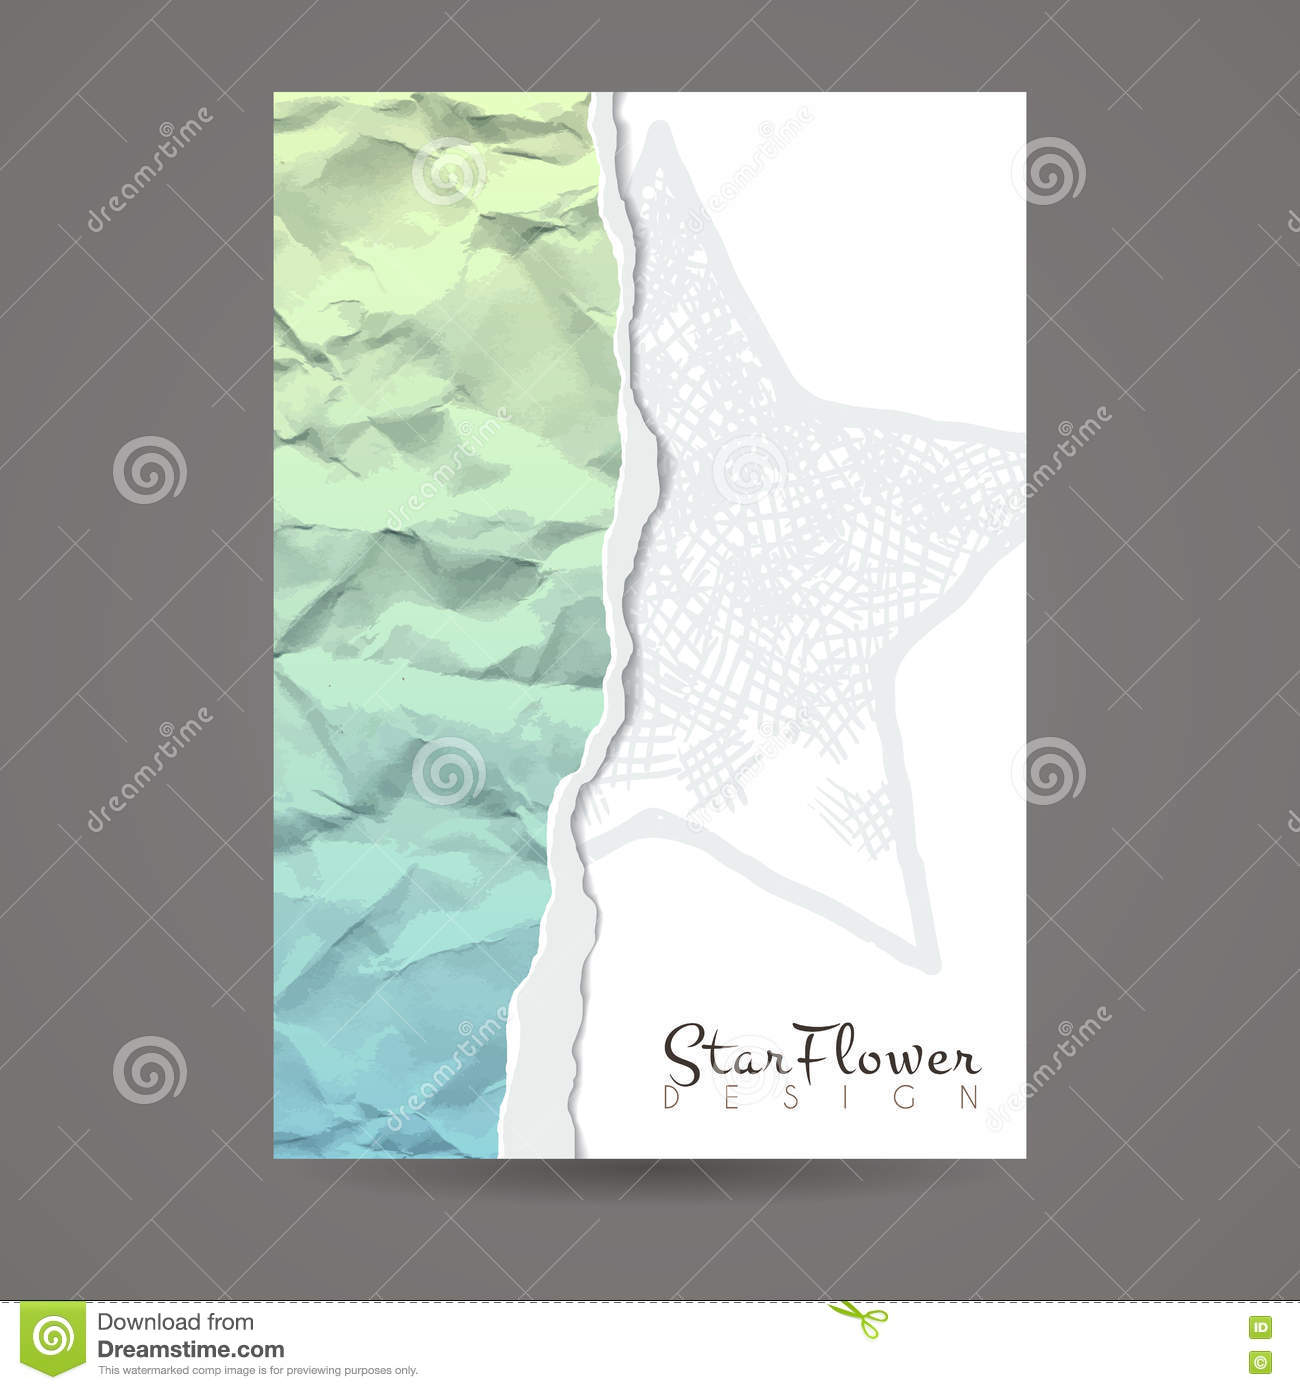 Business card star download choice image card design and card template business card star download gratis gallery card design and card descargar business card star gratis choice reheart Choice Image